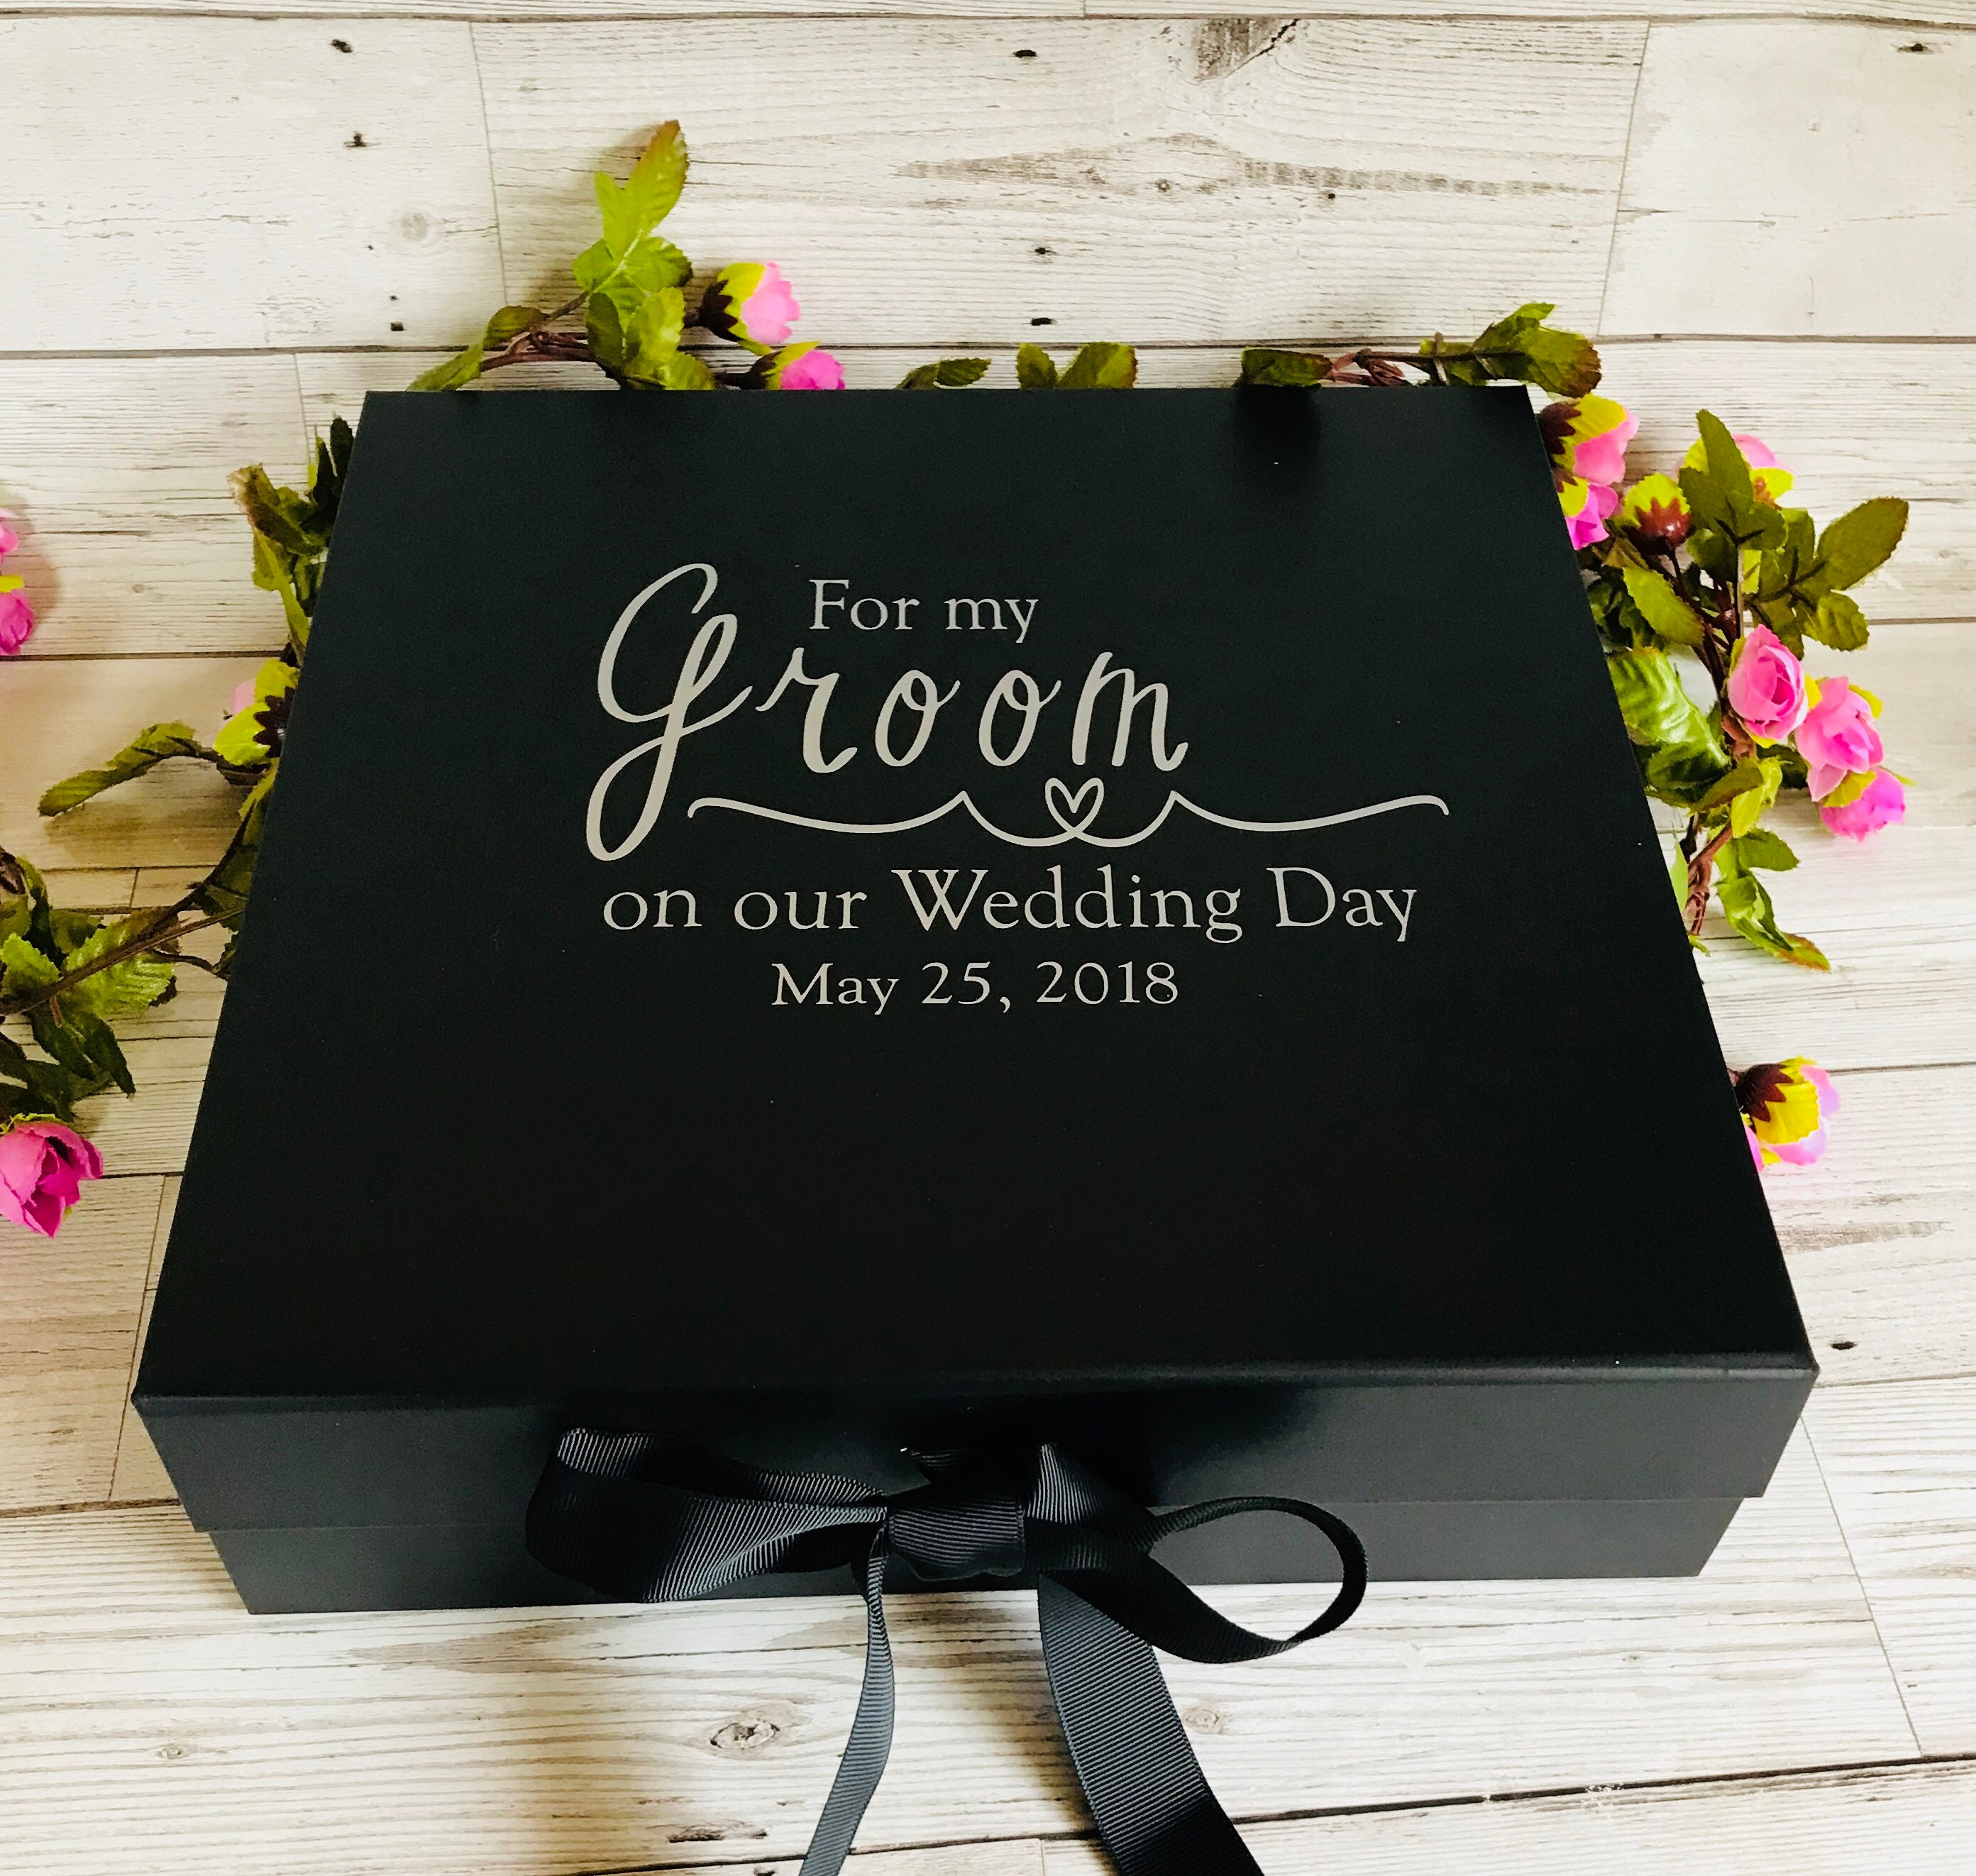 Gift For My Husband On Our Wedding Day: Groom Box For My Groom On Our Wedding Day Gorgeous Groom